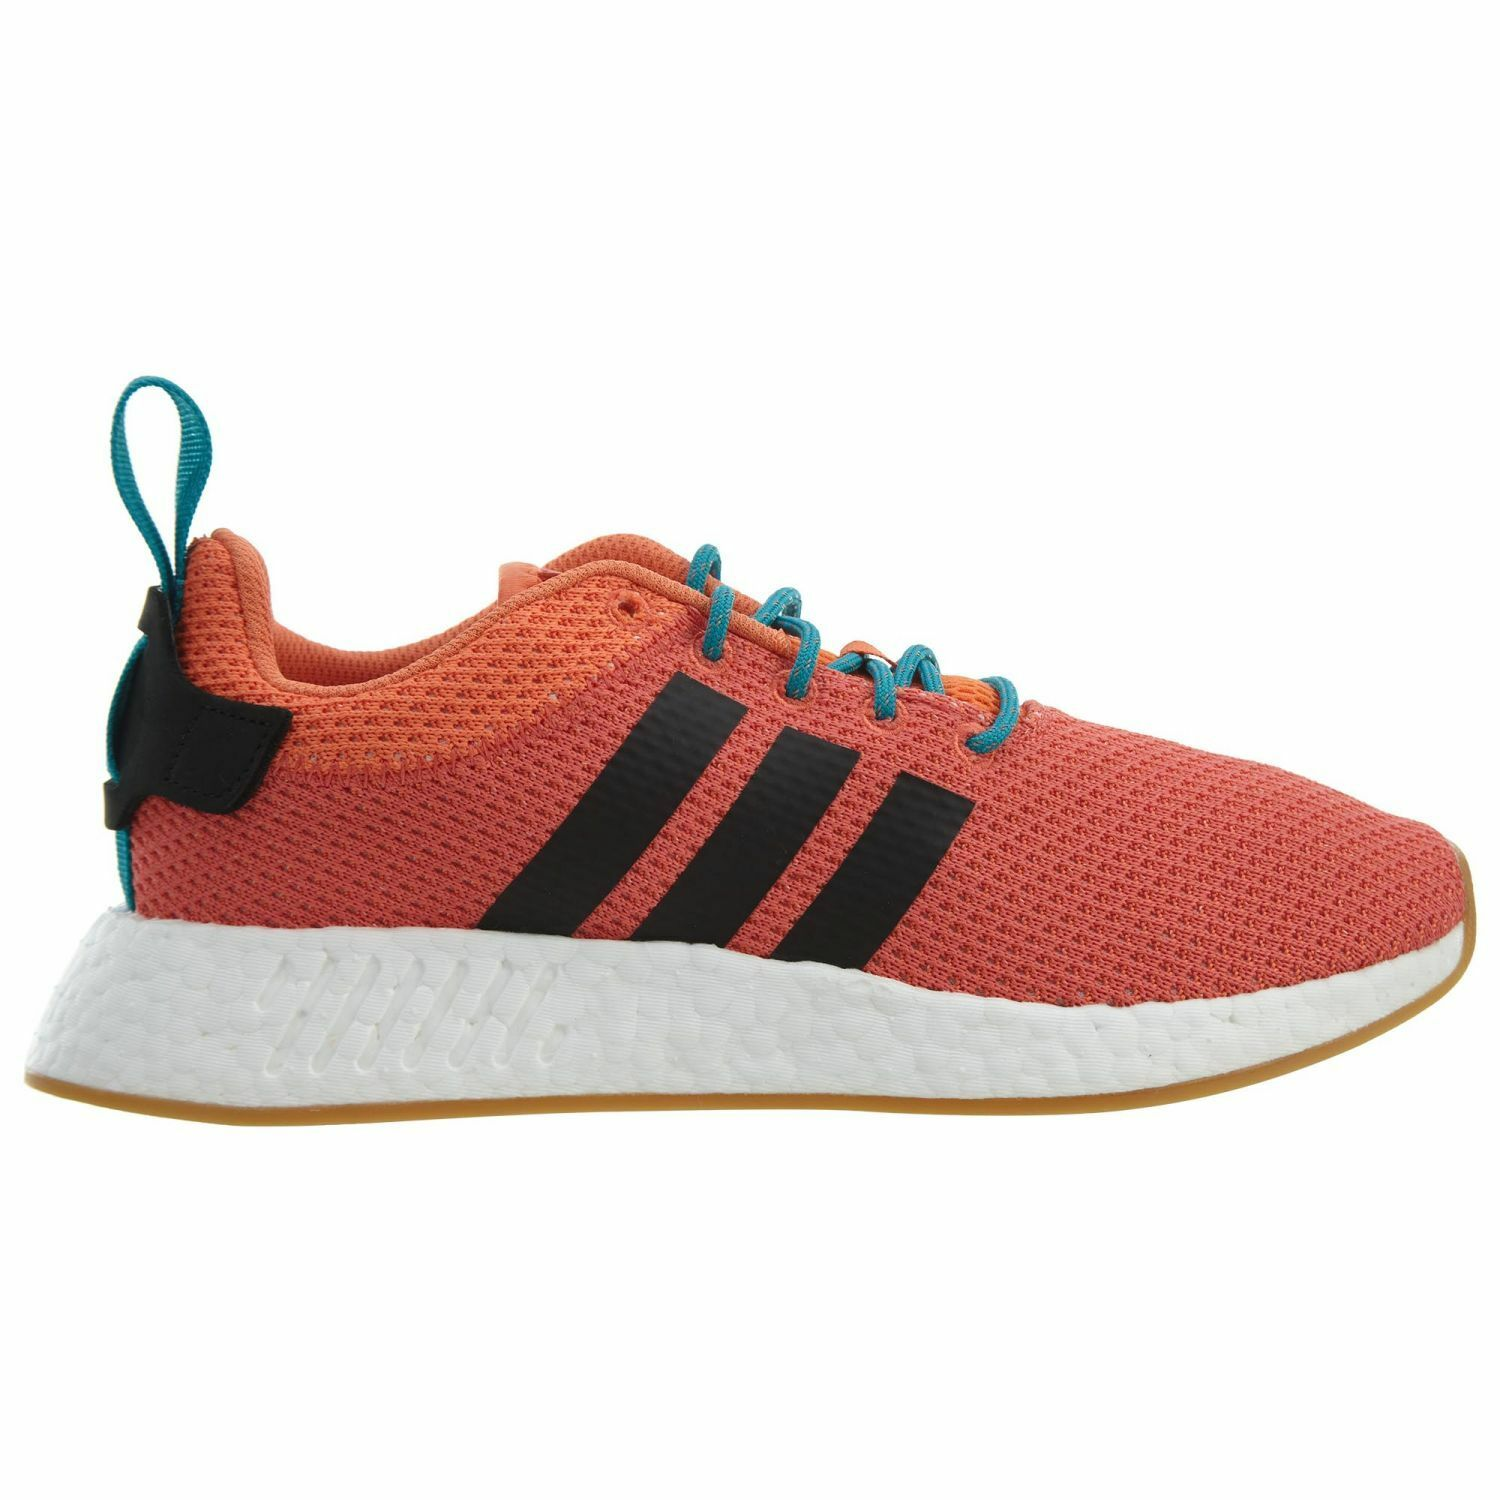 Adidas NMD_R2 Summer Mens CQ3081 Trace Orange Knit Boost Running Shoes Size 11